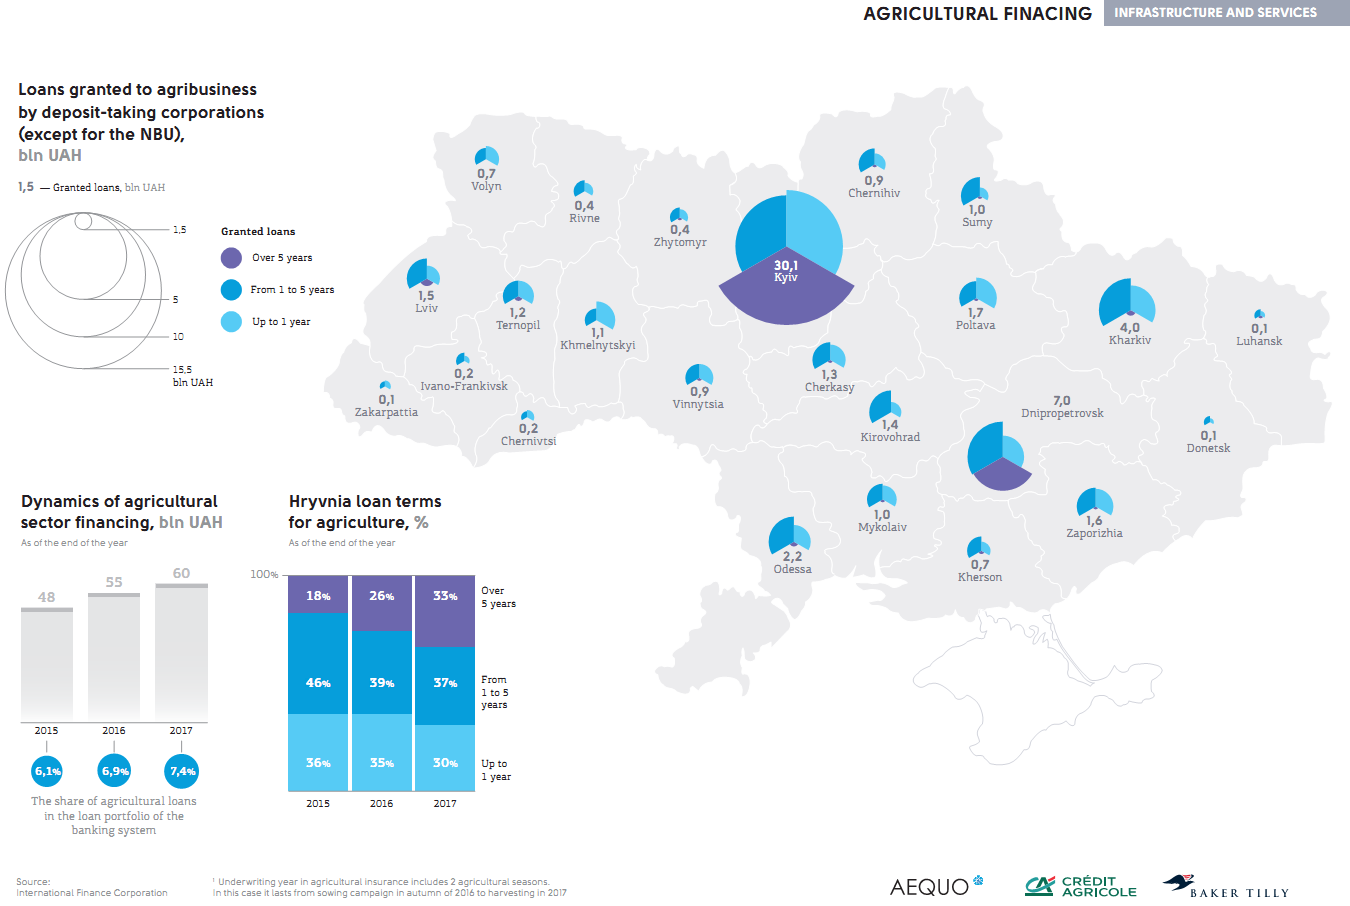 Agricultural sector financing in Ukraine (click for full resolution)